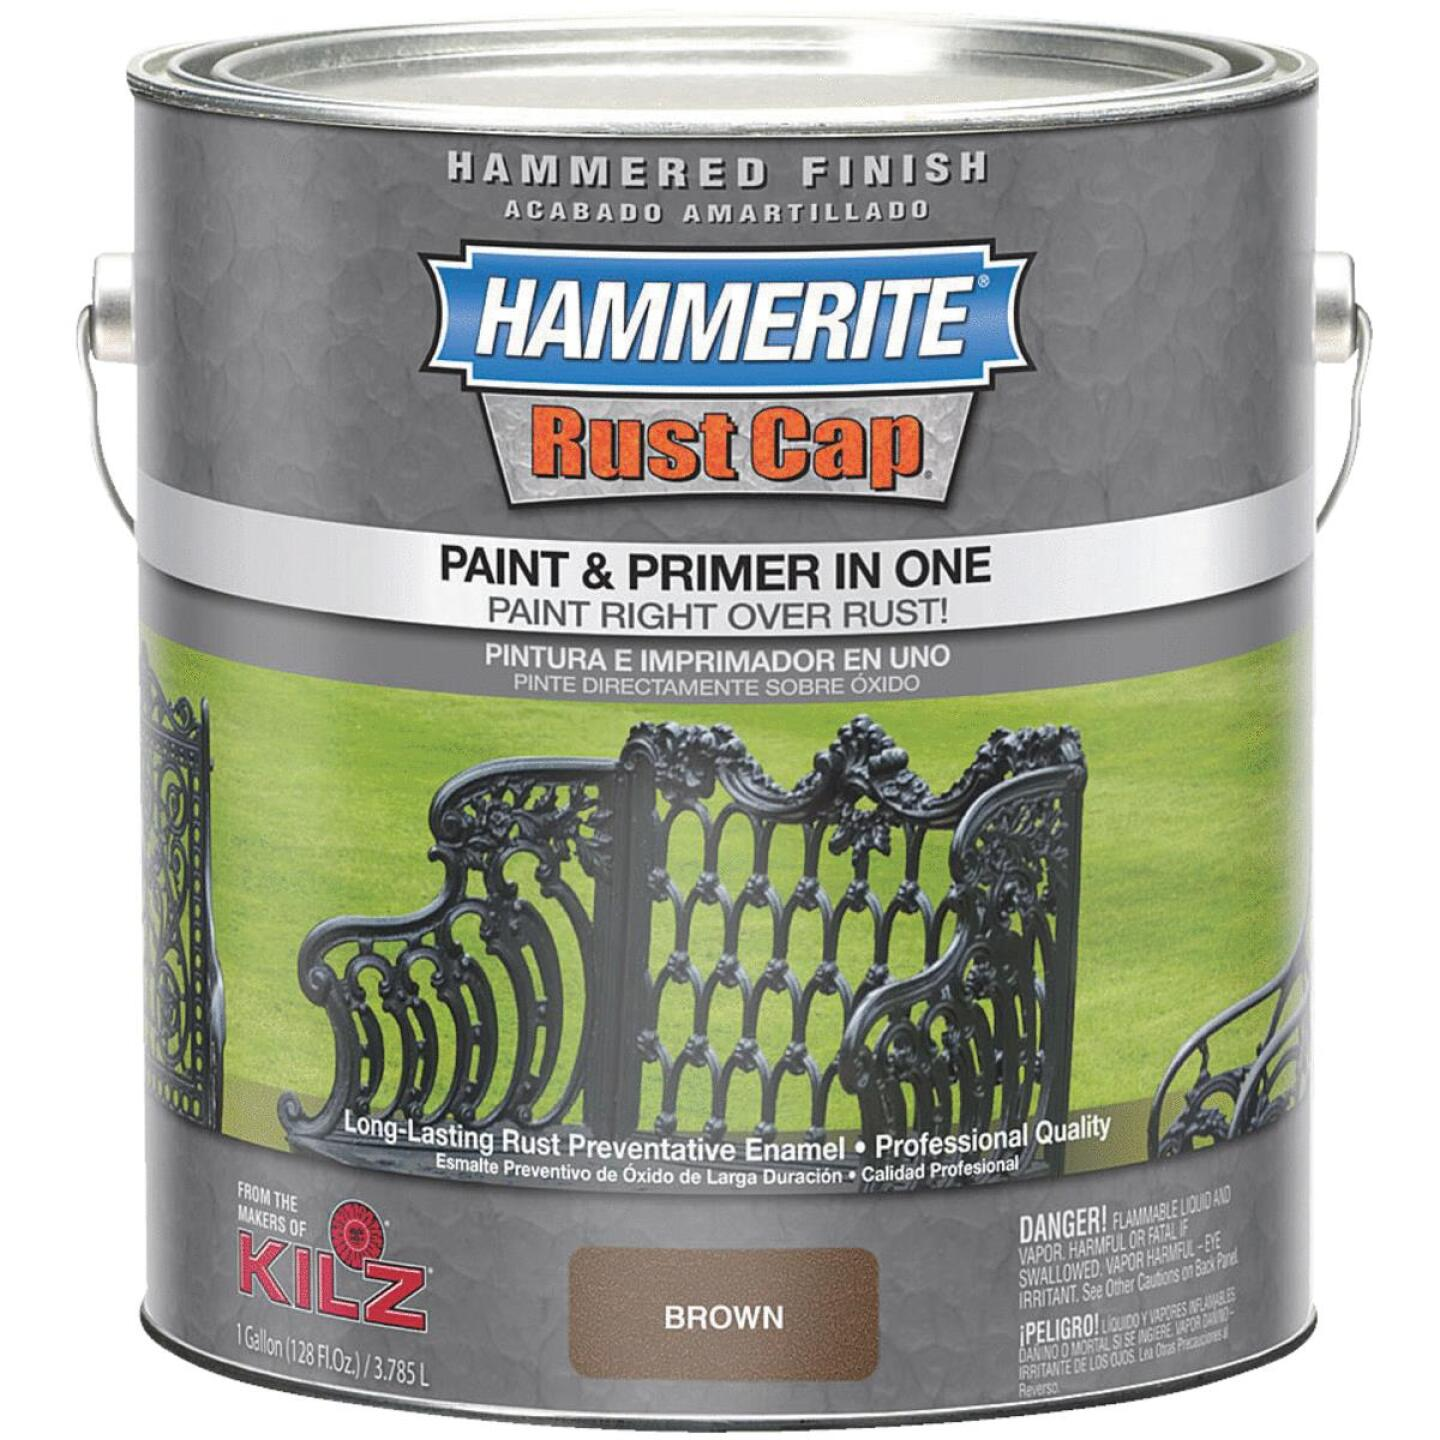 Hammerite Rust Cap Paint & Primer In One Hammered Finish, Brown, 1 Gal. Image 1